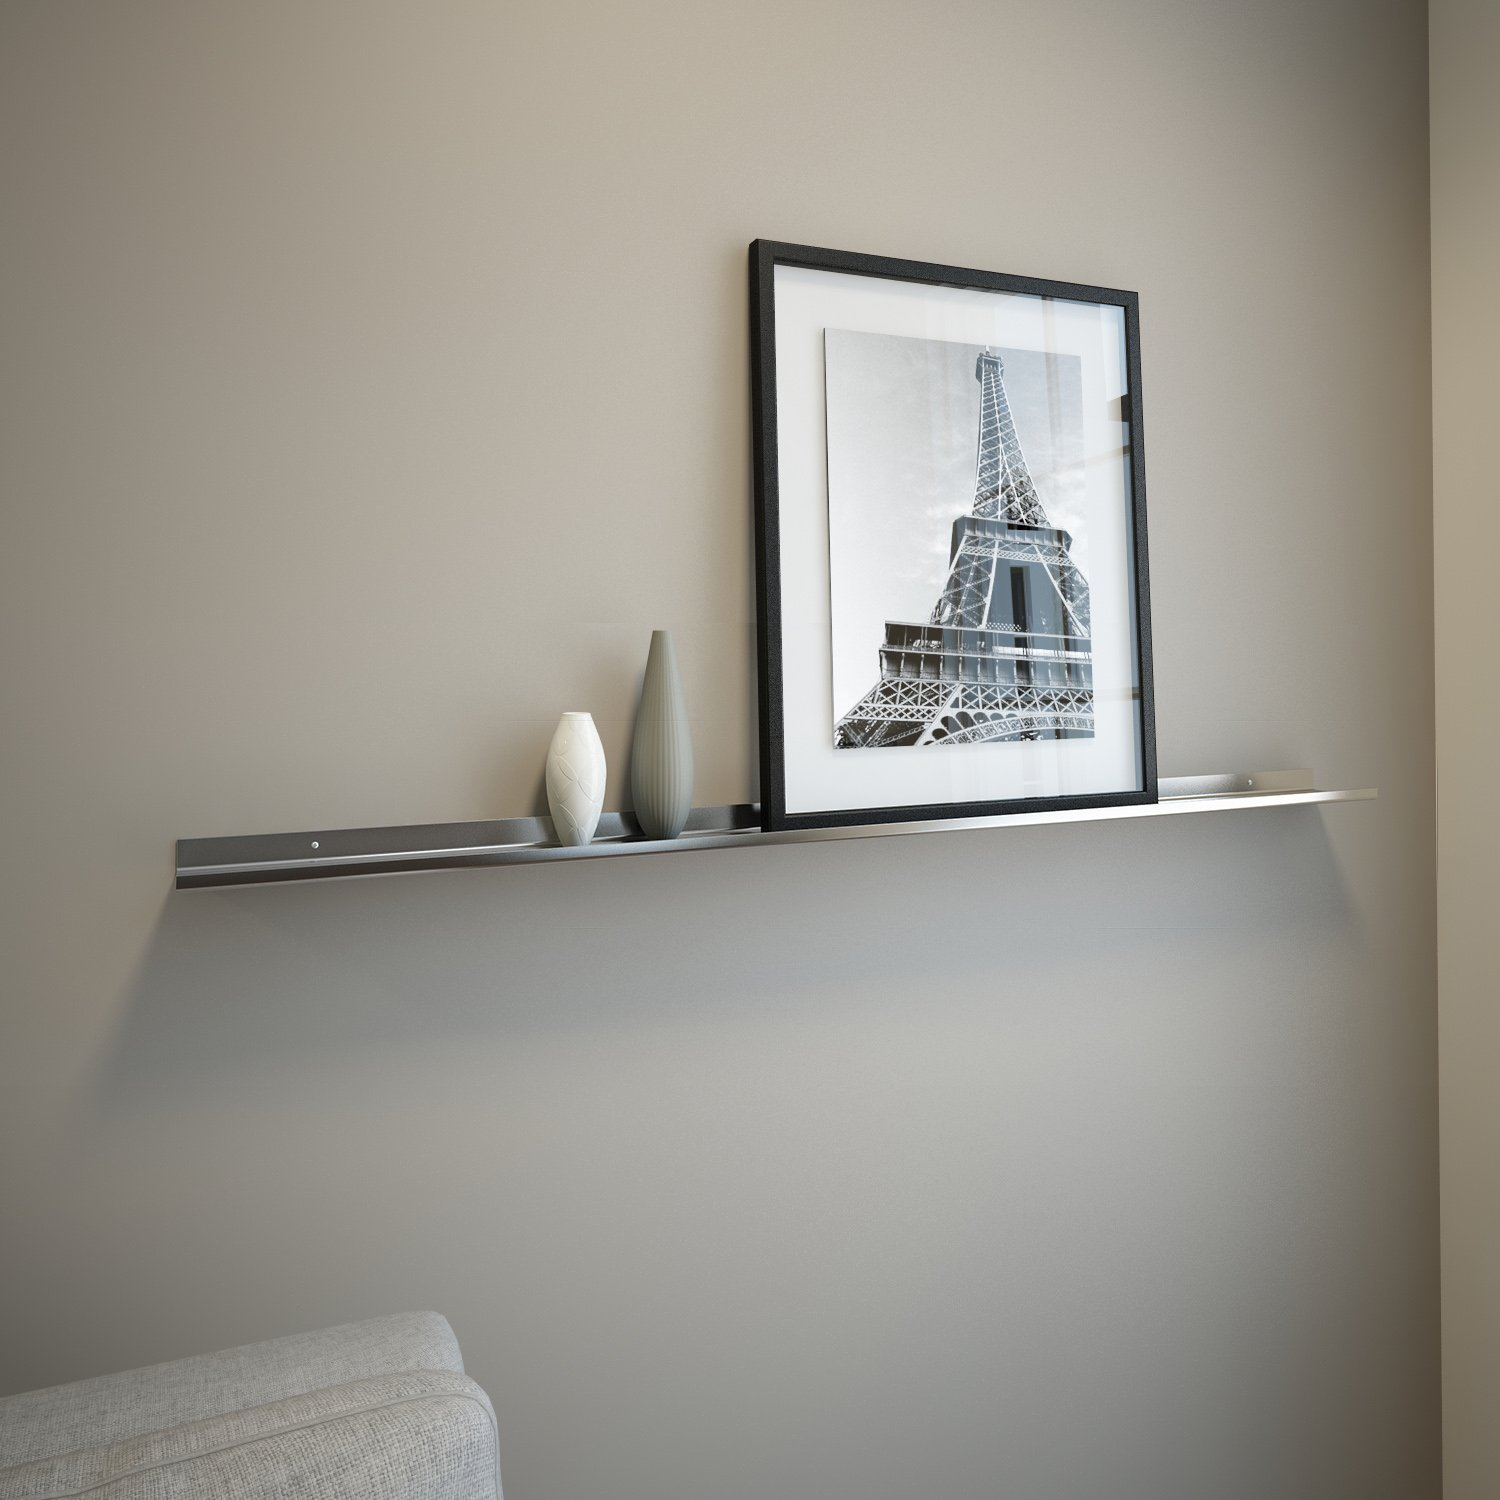 Amazon.com: Stainless Steel Floating Ledge For Photo And Picture 3,5 Great Ideas